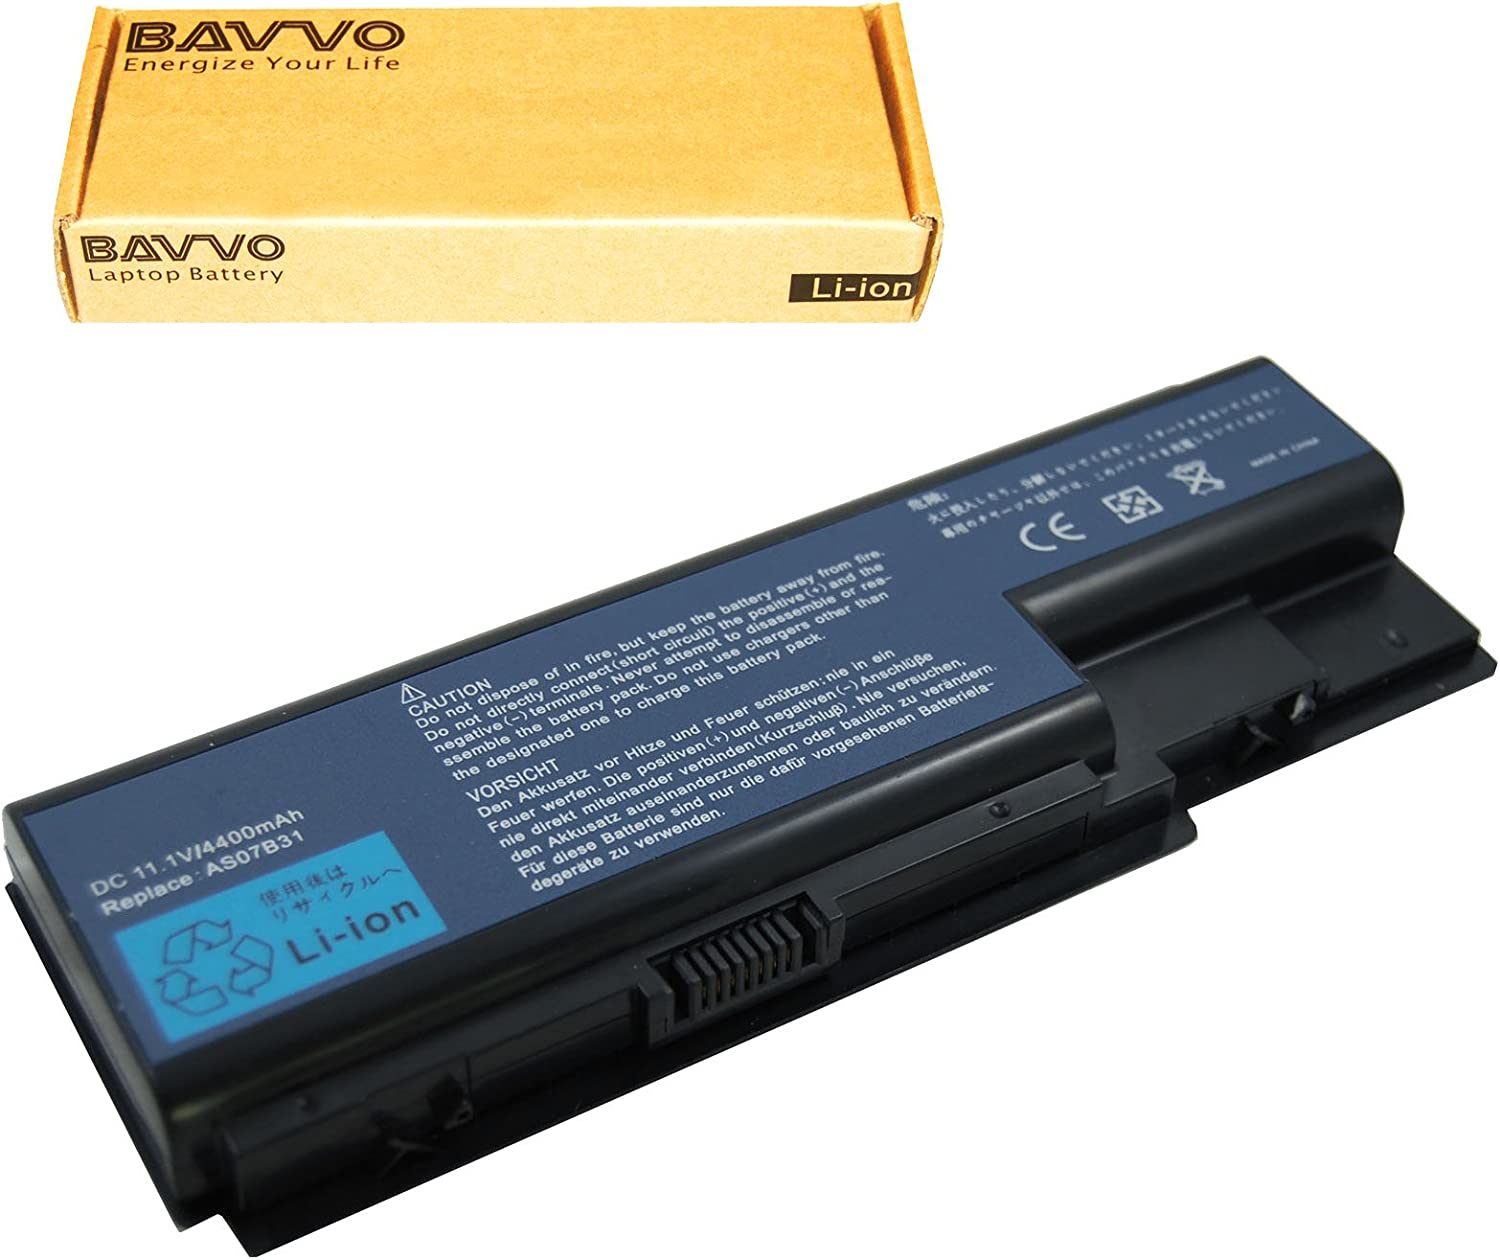 Bavvo Battery Compatible with ACER as07bx1 aso7b41 bt.00604.025 BT.00803.024 BT.00804.020